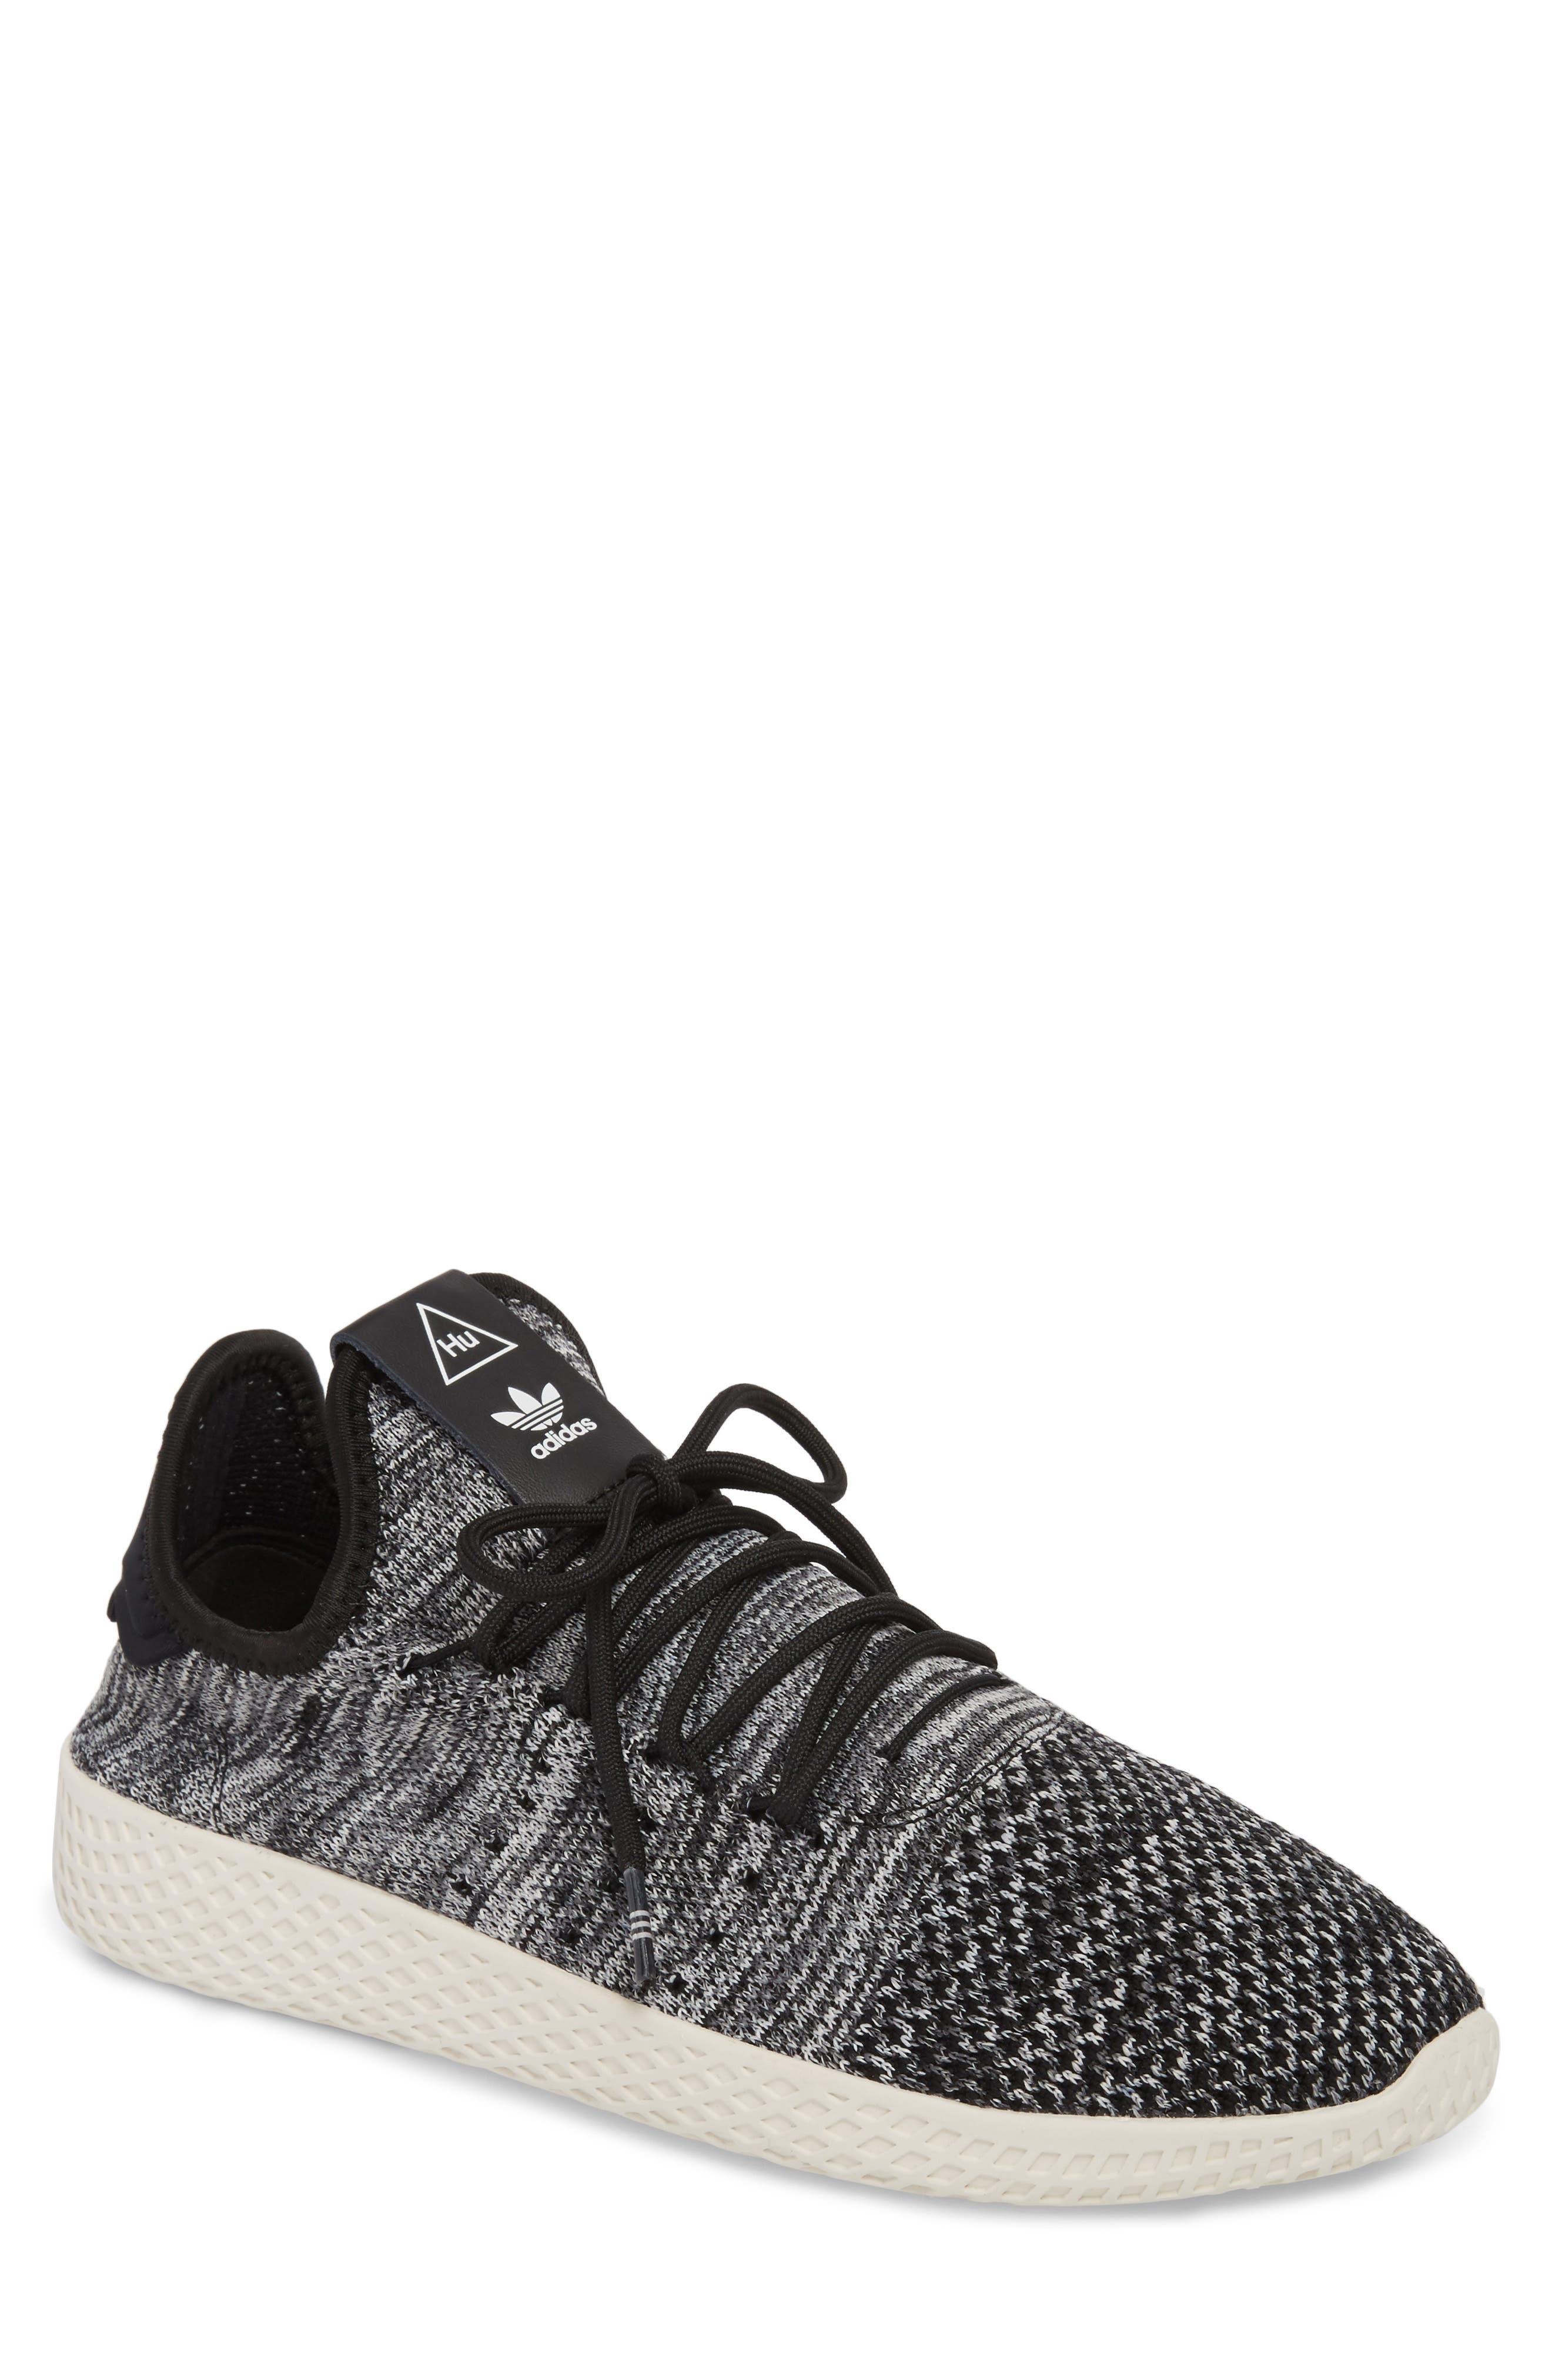 Pharrell Williams Tennis Hu Sneaker,                         Main,                         color, Chalk White/ Core Black/ White